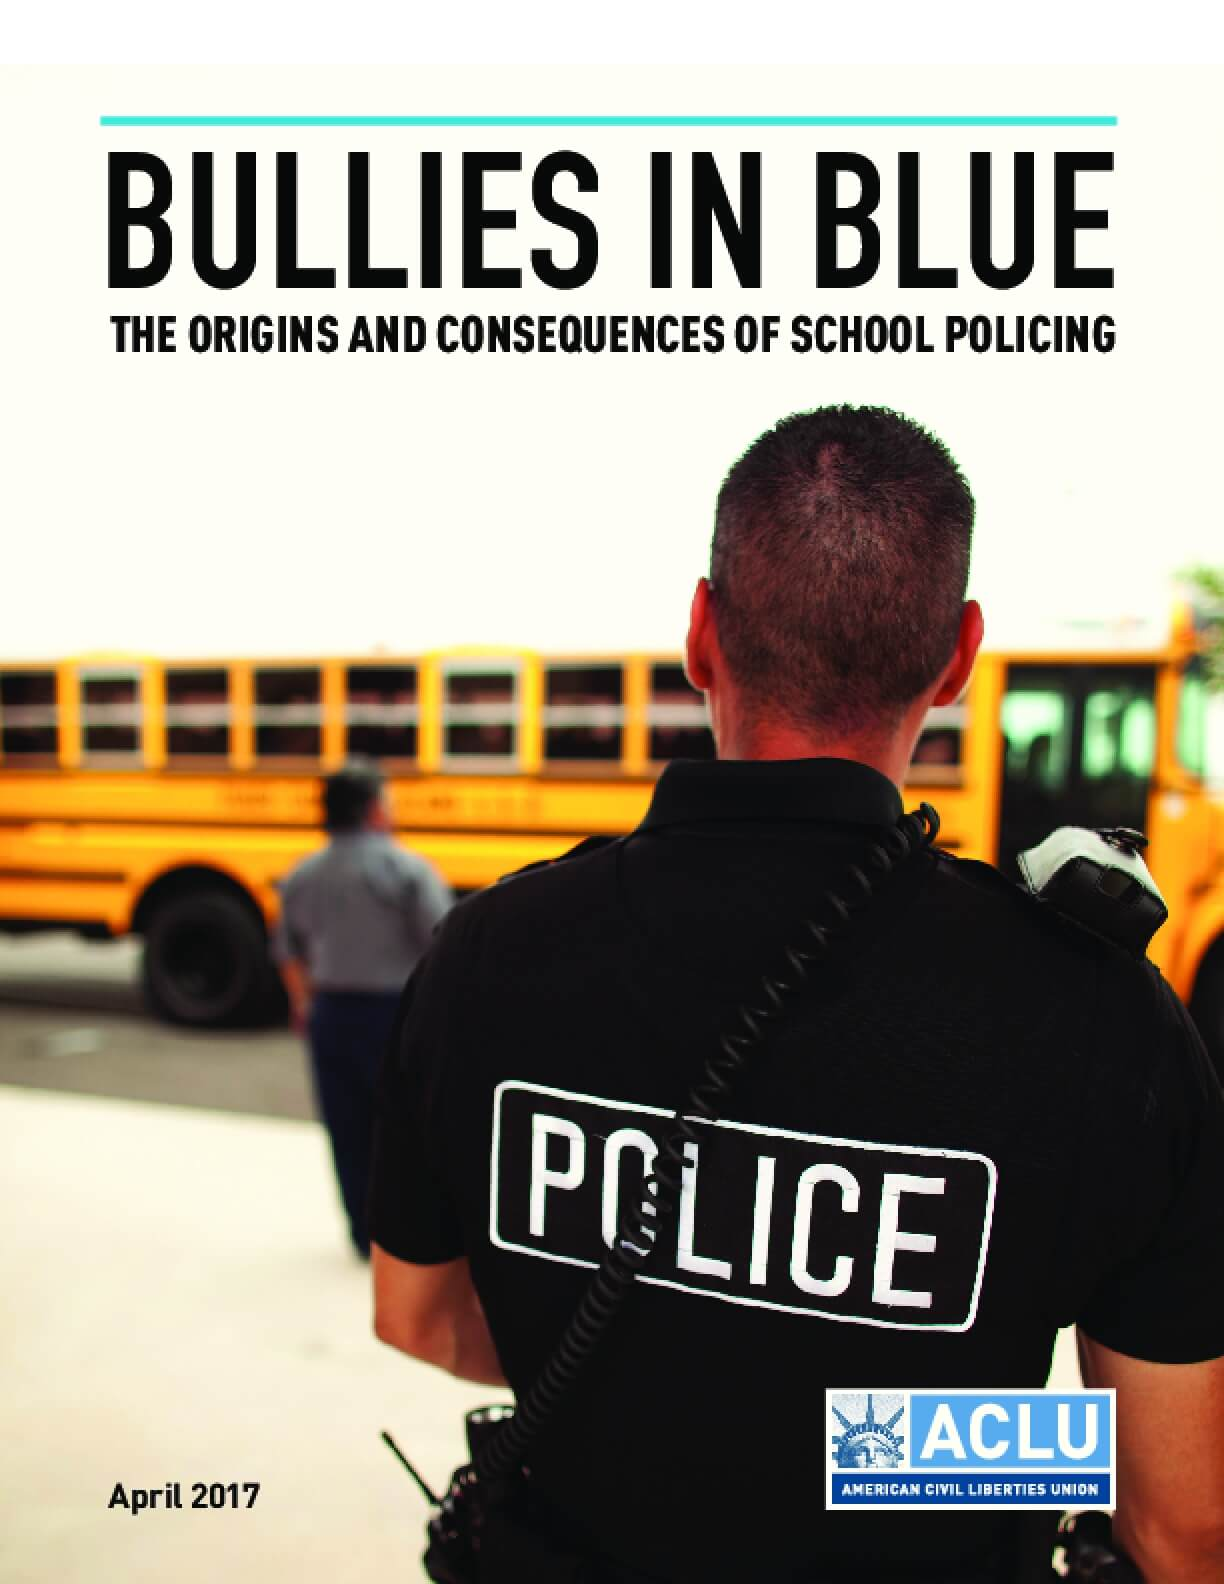 Bullies In Blue: Origins and Consequences of School Policing